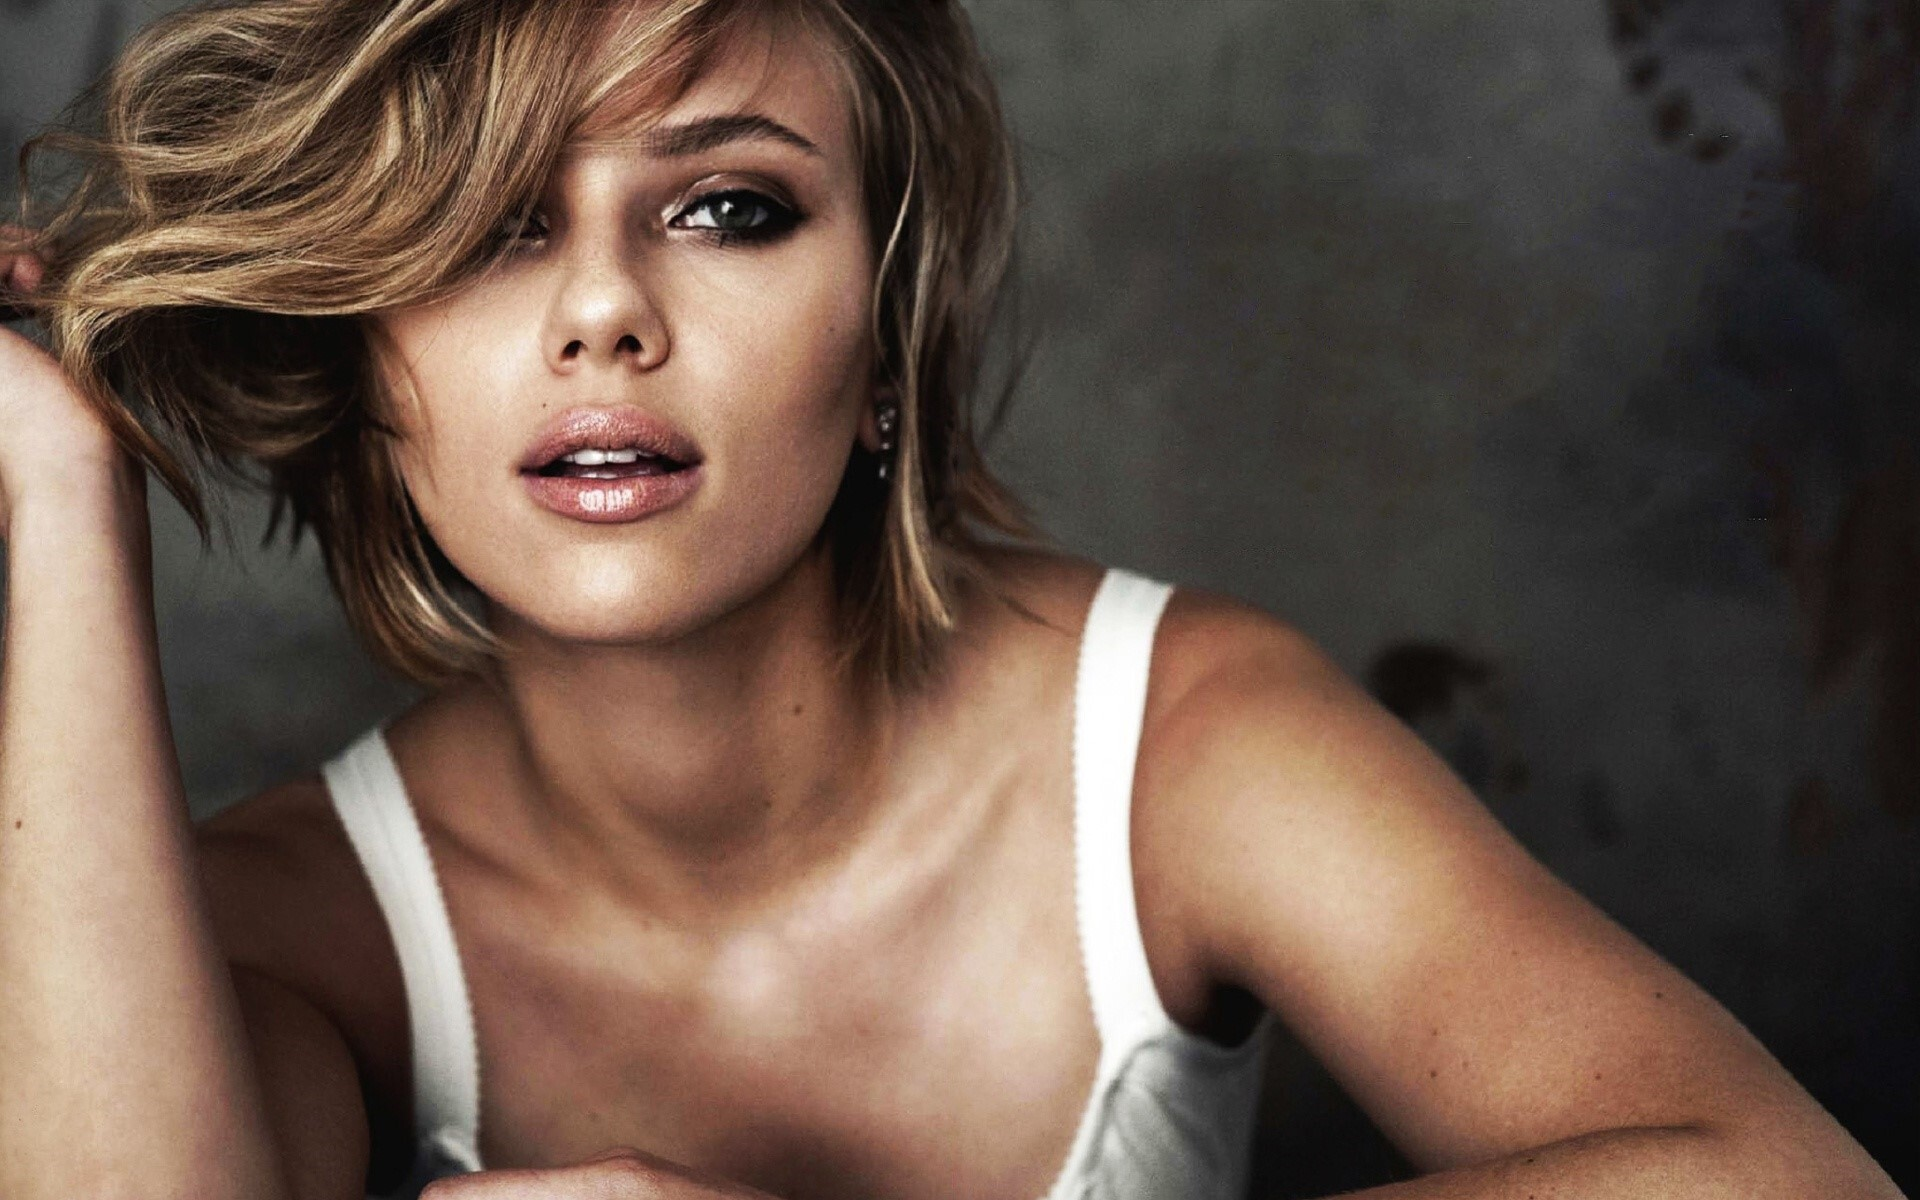 hollywood actress wallpapers | free download hd new celebrities images